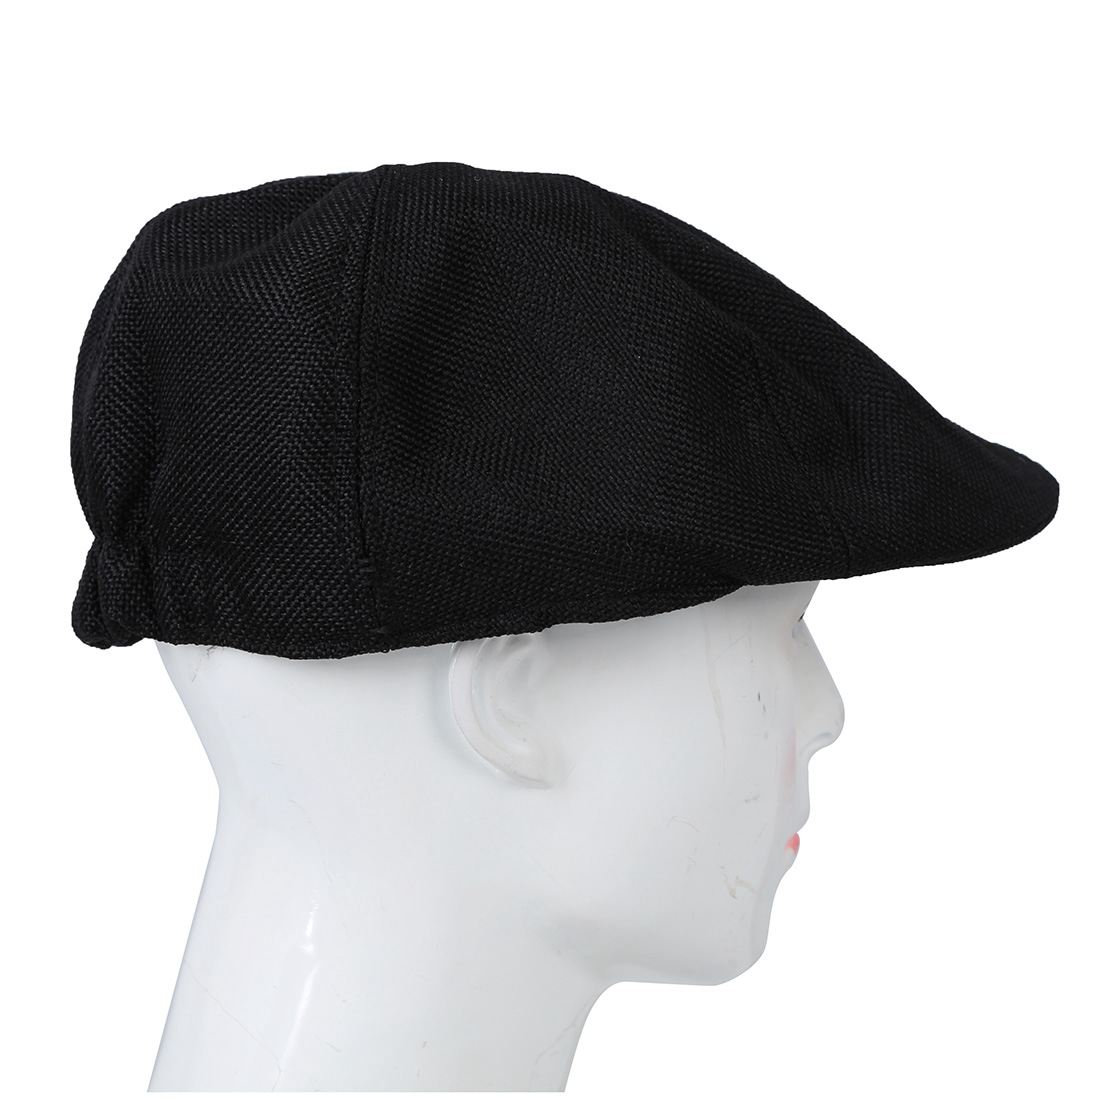 Solid Fluid Systems Gatsby Cap Ivy Hat Golf Driving Summer Sun Flat Cabbie Newsboy-Black ...